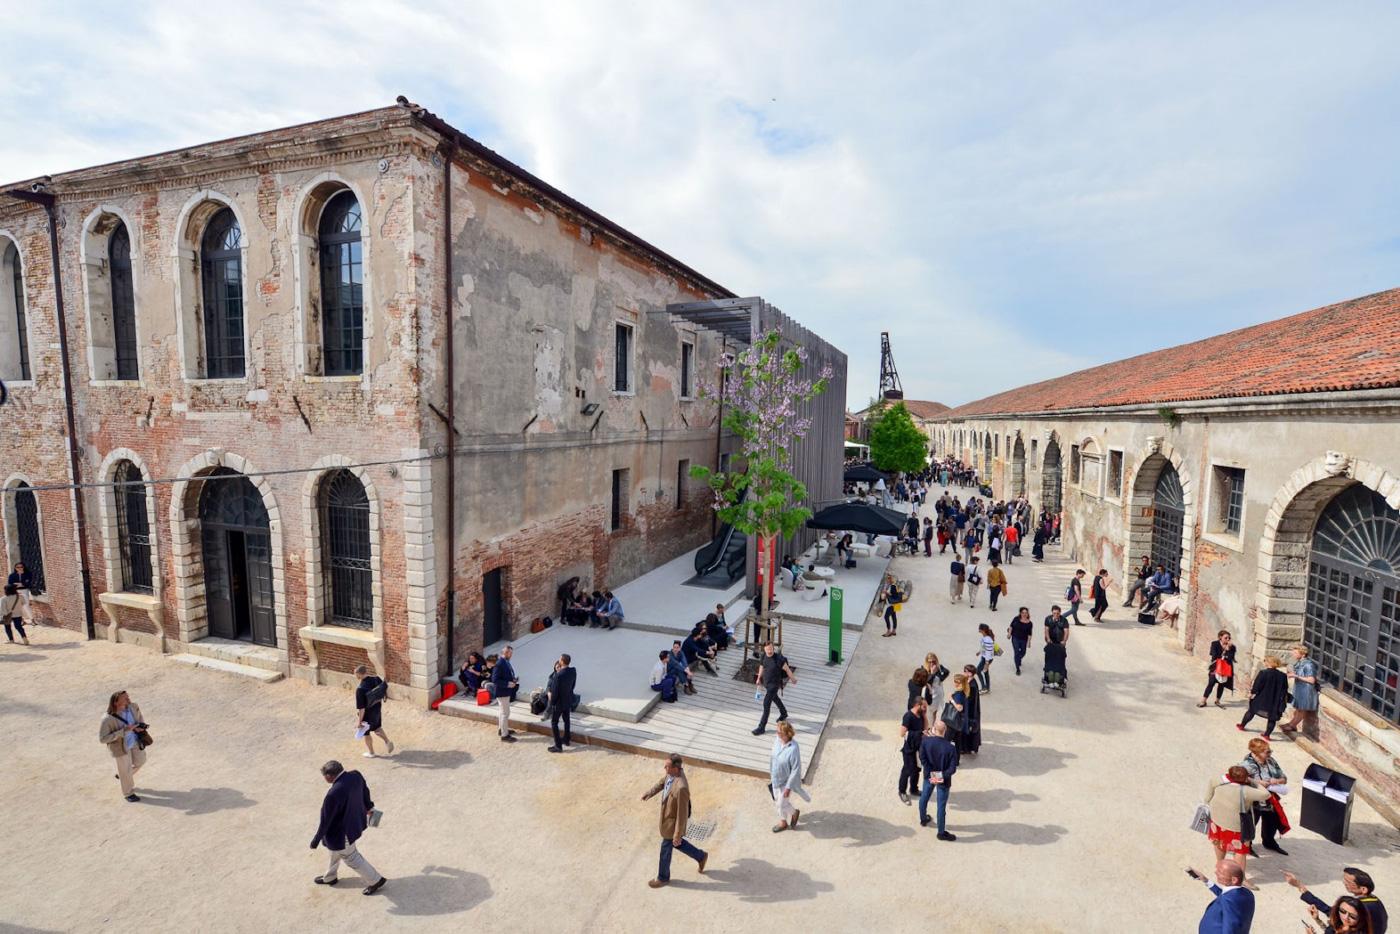 The Venetian Arsenal at the Venice Architecture Biennale